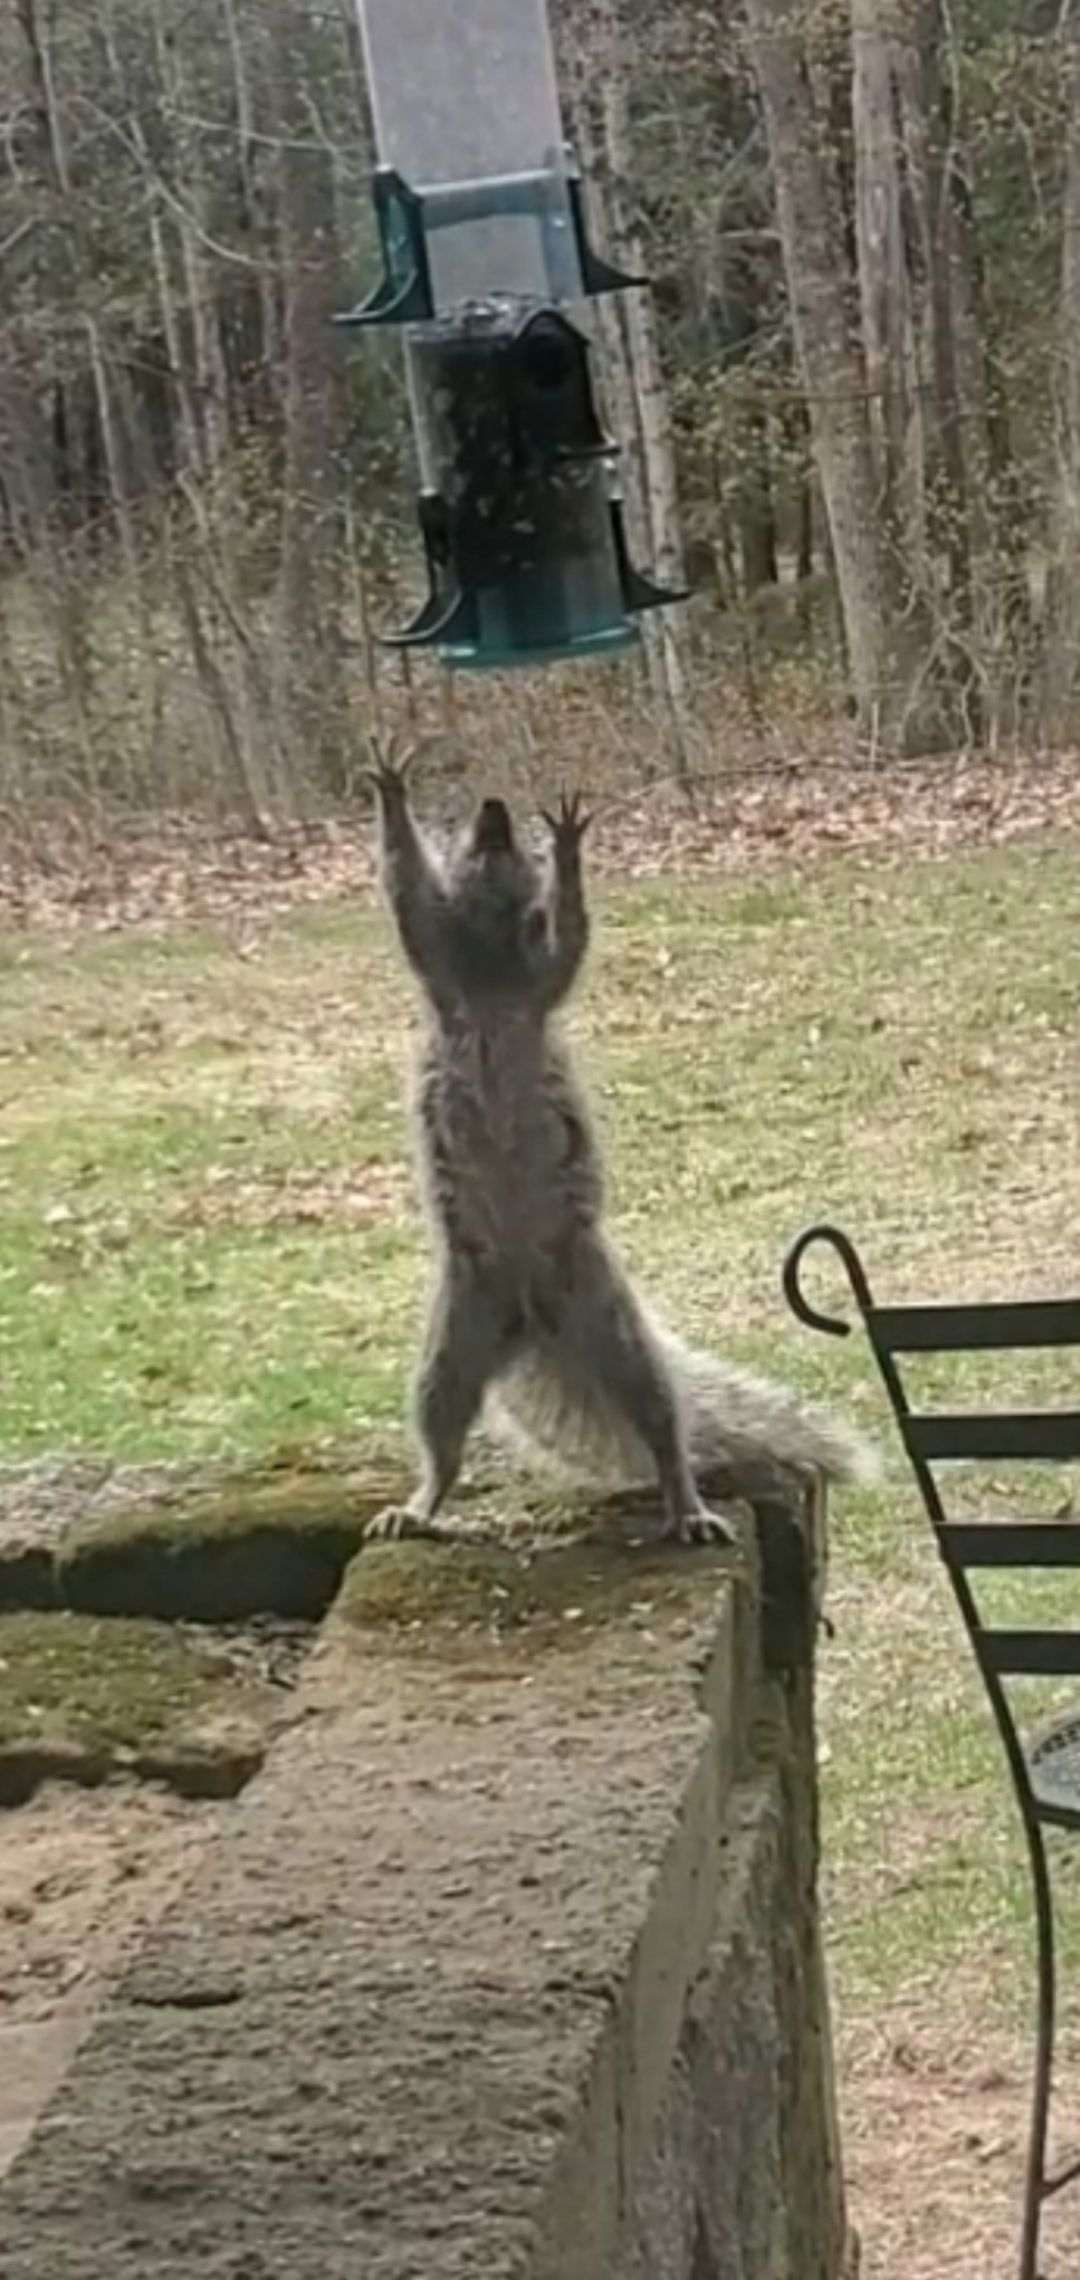 I tried squirrel-proofing my bird feeder. While it didn't work for long, I got a good 20 minutes of entertainment watching them try and figure it out.